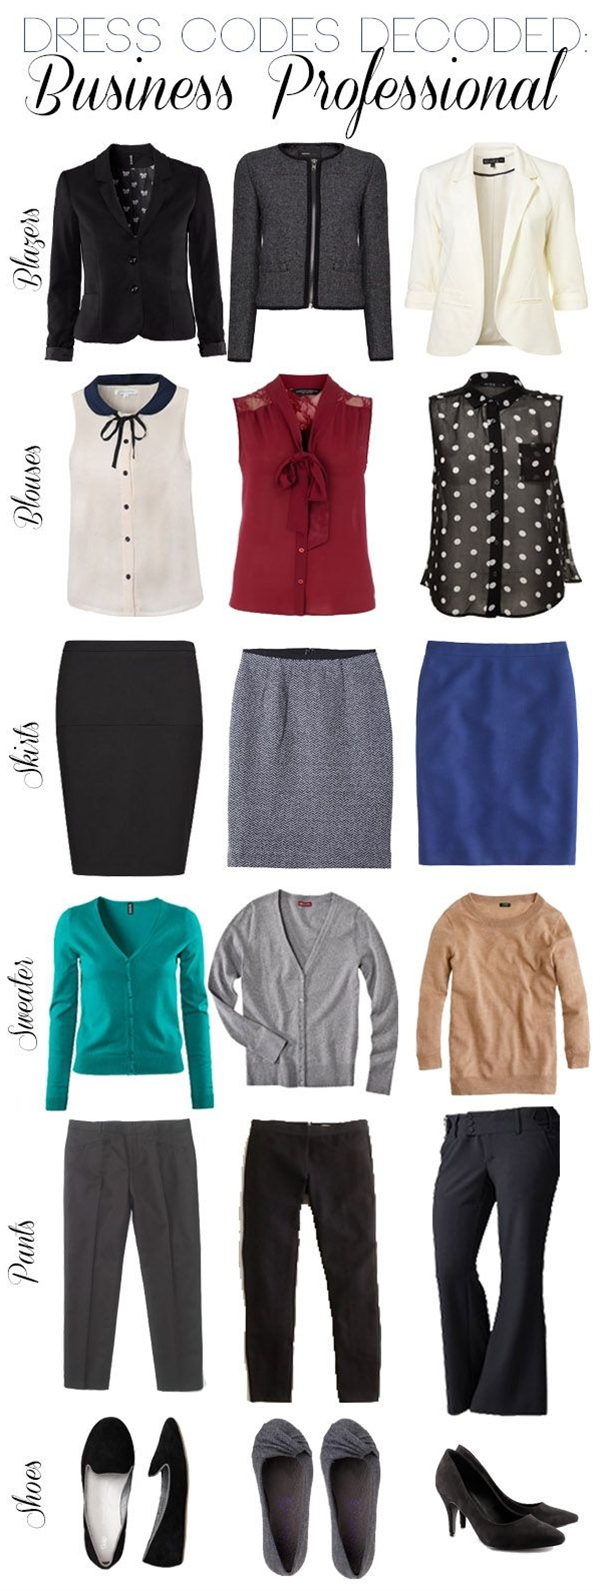 Business Professional clothing to mix & match that's affordable & stylish! Trying to build my professional wardrobe.